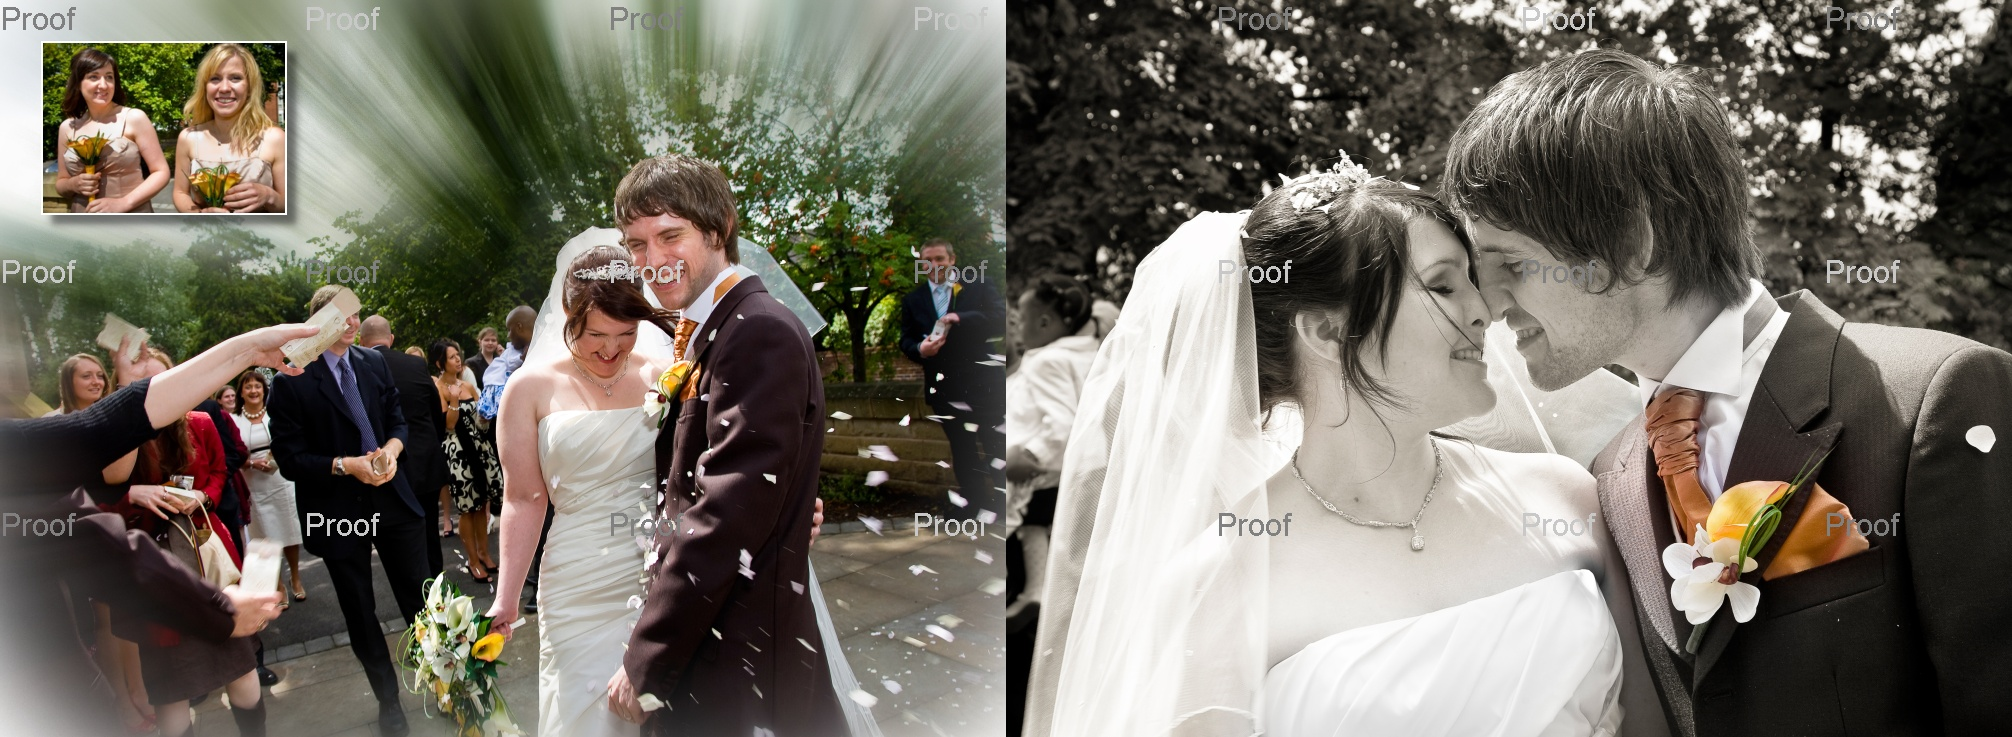 pages 22-23 of wedding storybook album, confetti pictures